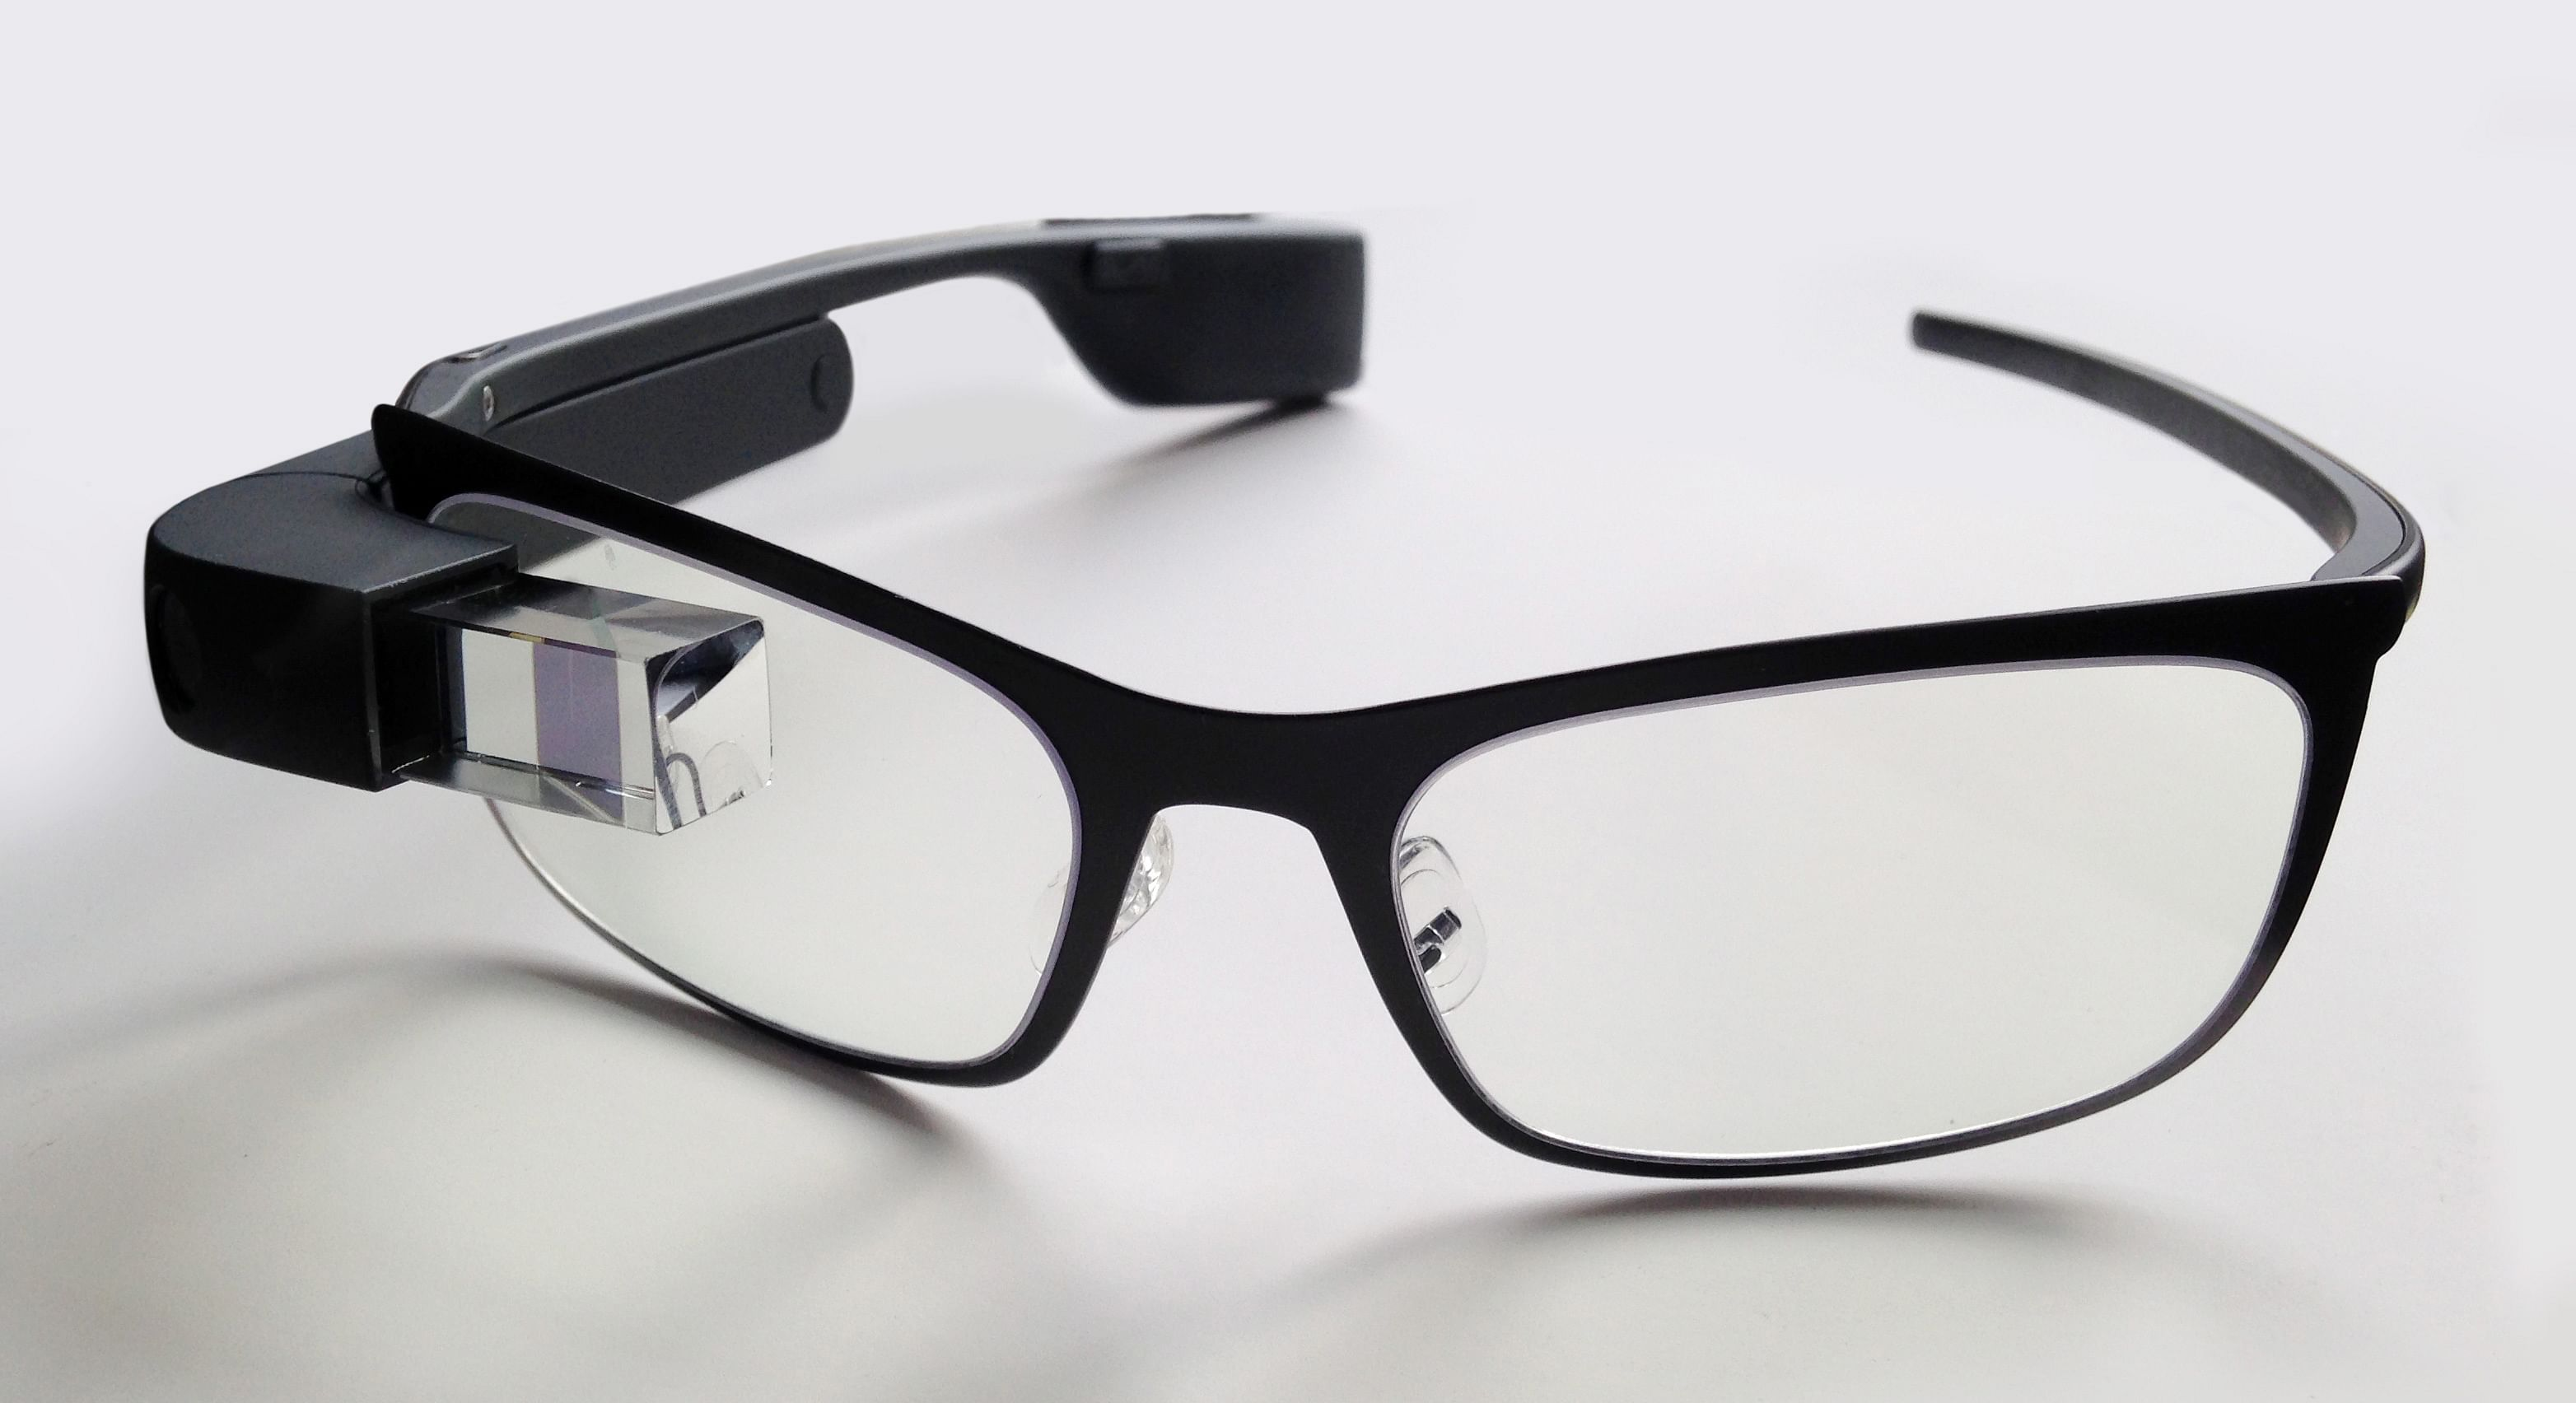 Google Glass with frames. (Source: WIkimedia Commons)